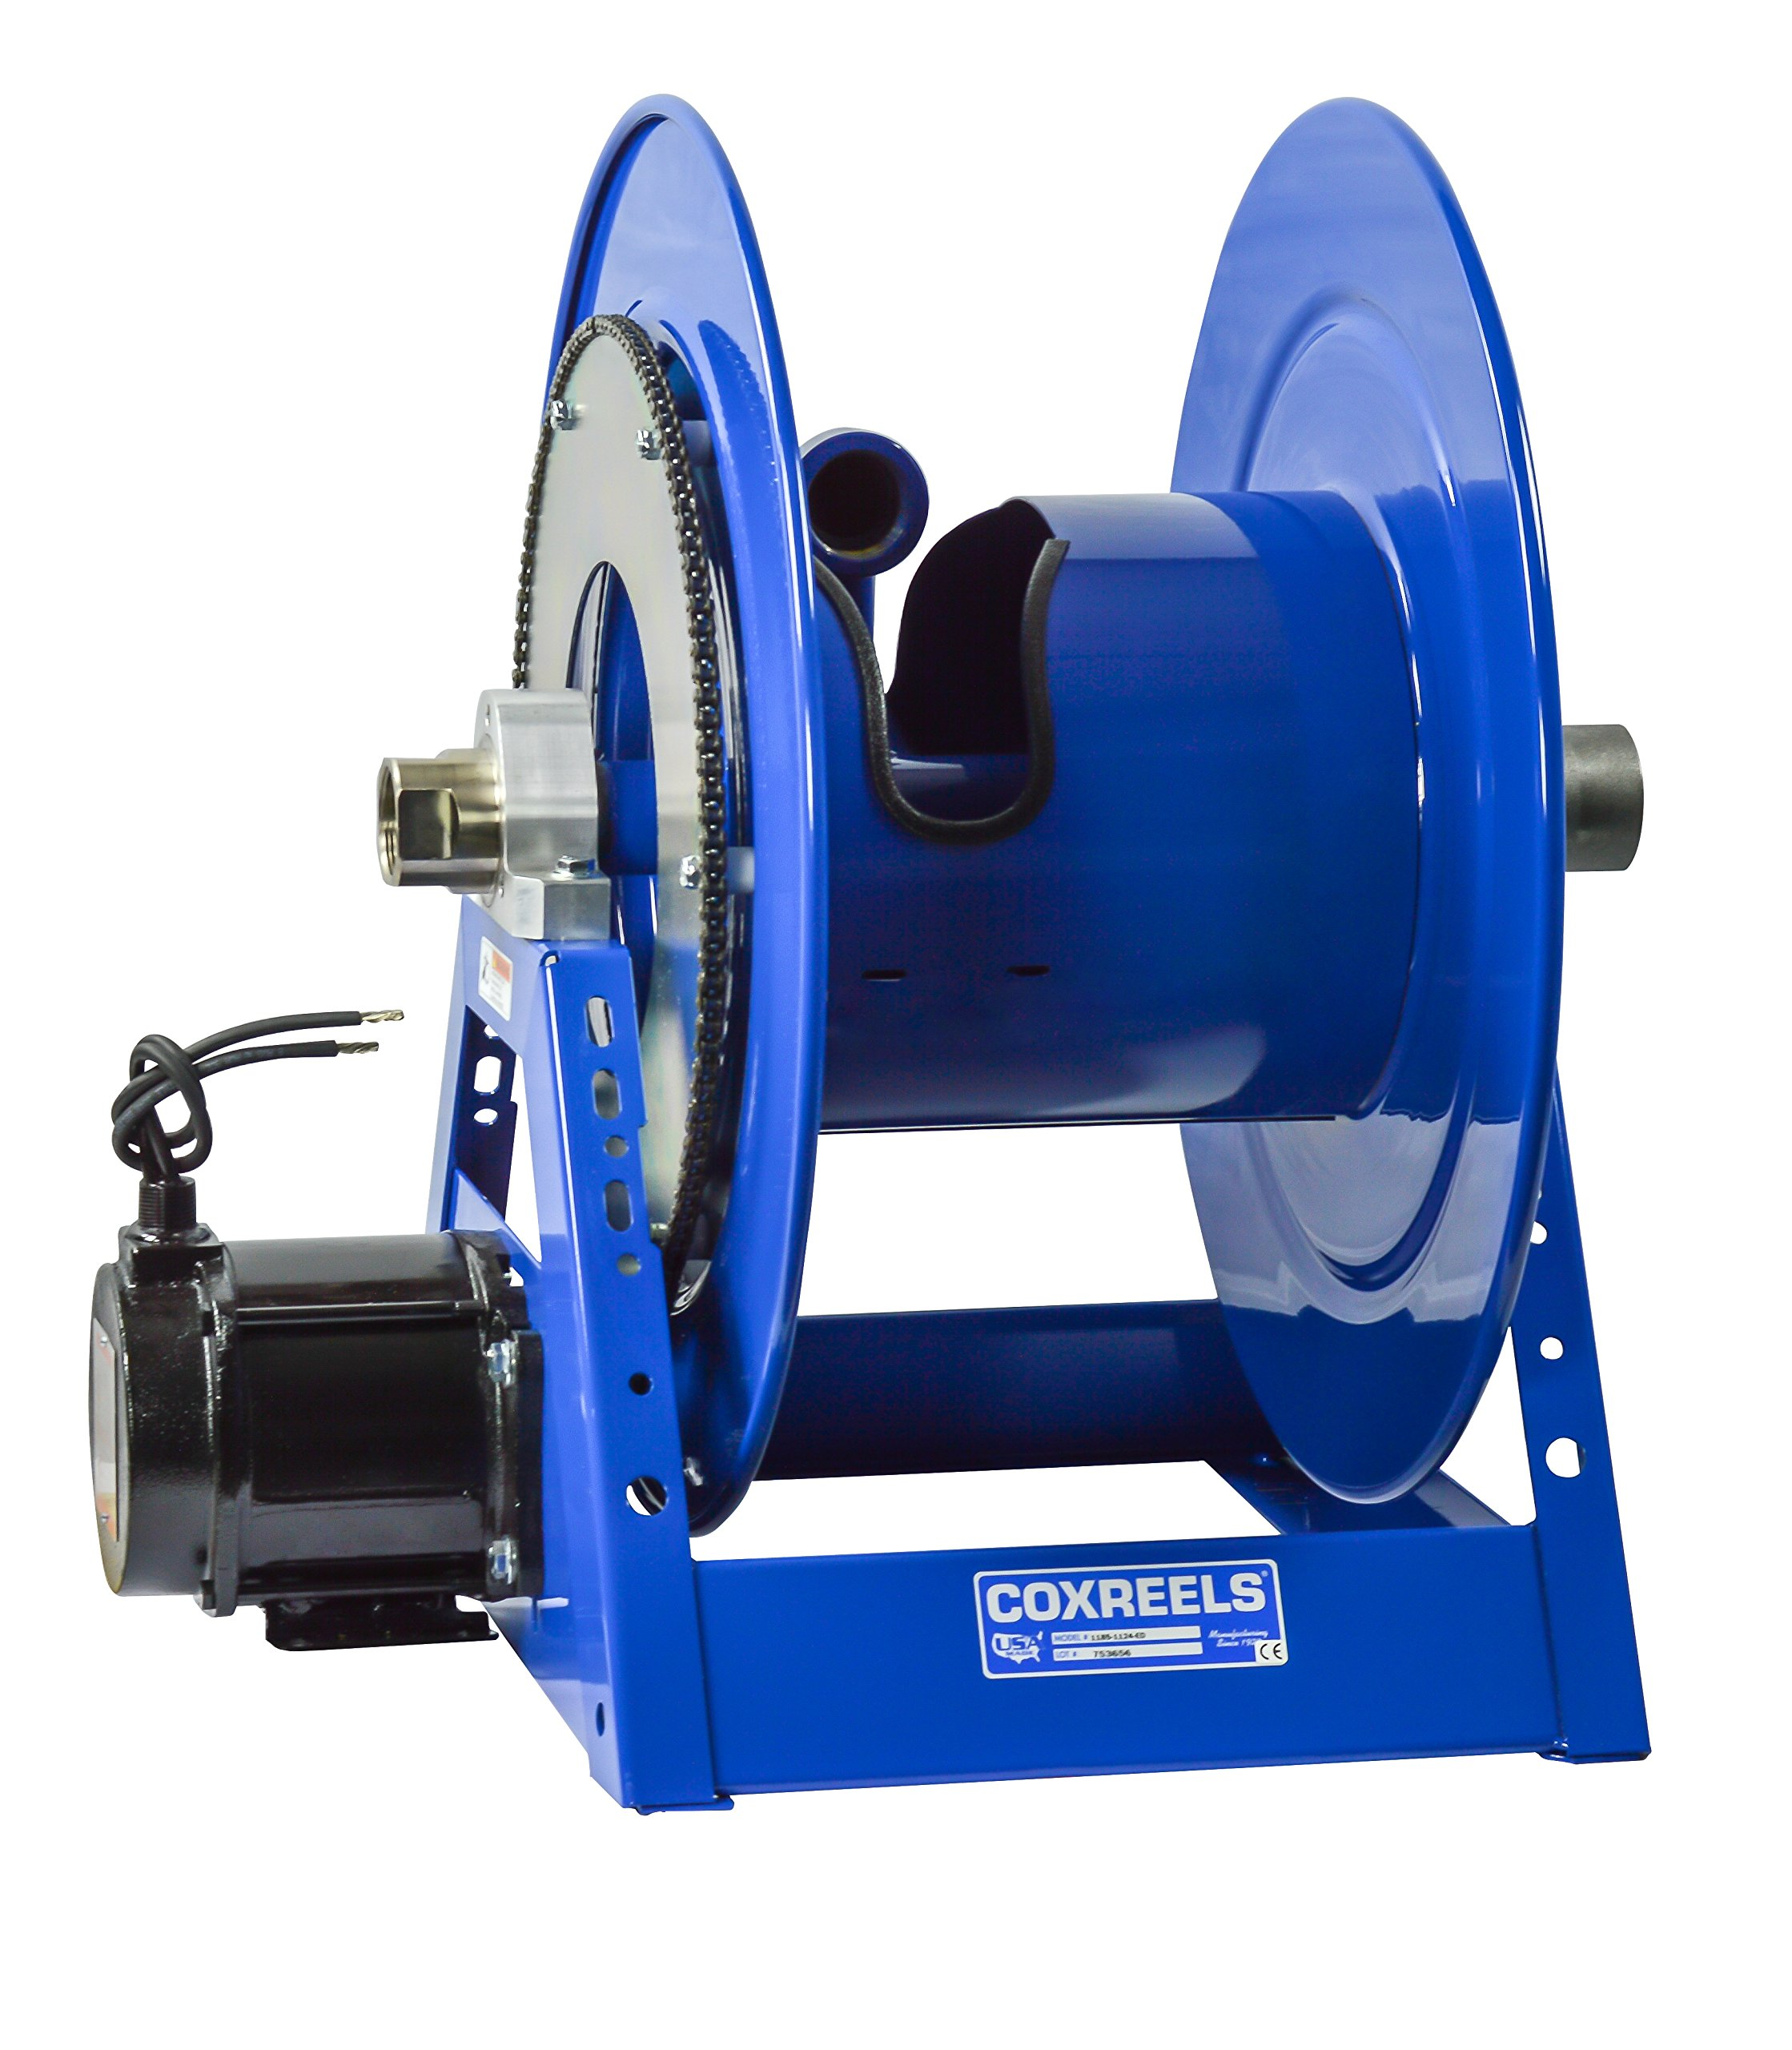 Coxreels 1185-2528-ED Electric 12V DC Explosion Proof 1/2HP Motor Rewind Hose Reel: 1 1/2'' I.D., 150' hose capacity, less hose, 600 PSI by Coxreels